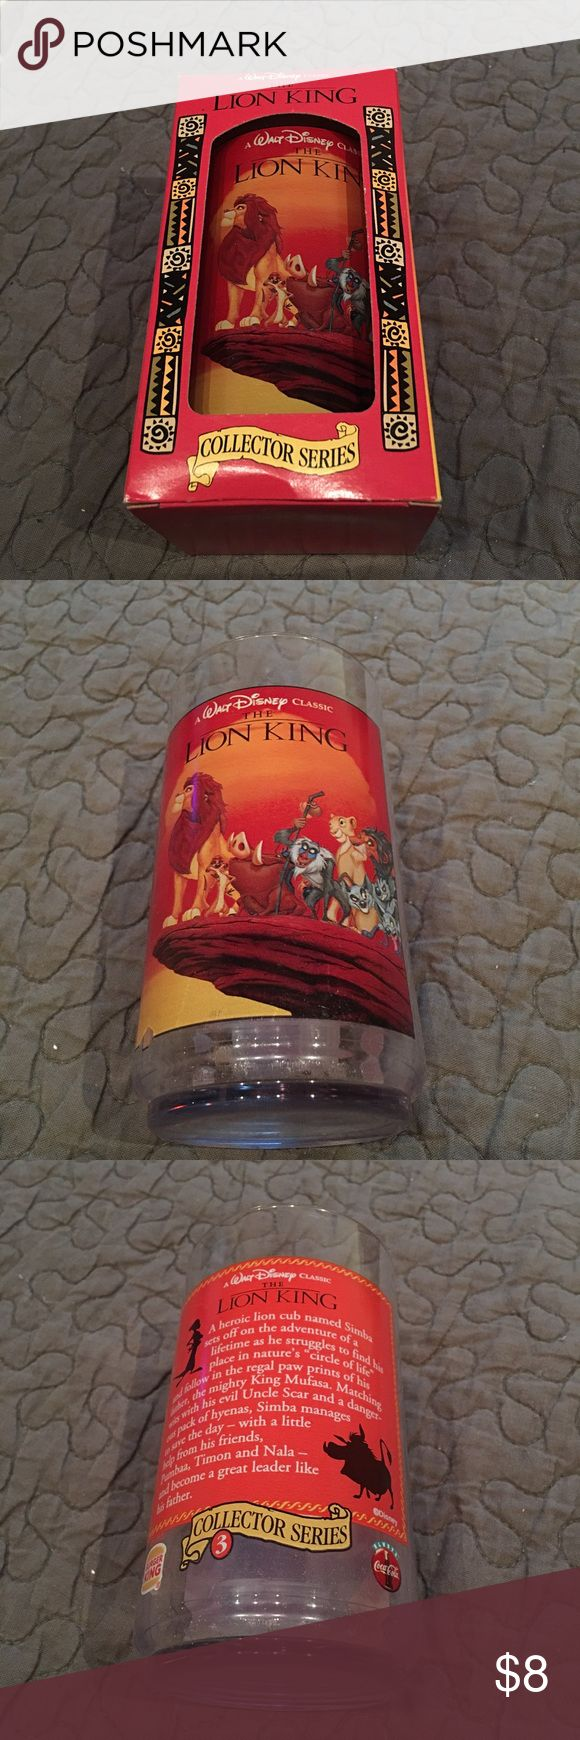 """Disney Lion King Cup Burger King Collector Series Disney Lion King Burger King Collector Series Cup in original box. This cup is number 3 in the Collector Series. Cup measures 5.5"""" tall and 3"""" across. Made of plastic, not glass. In excellent condition, never used. Other"""